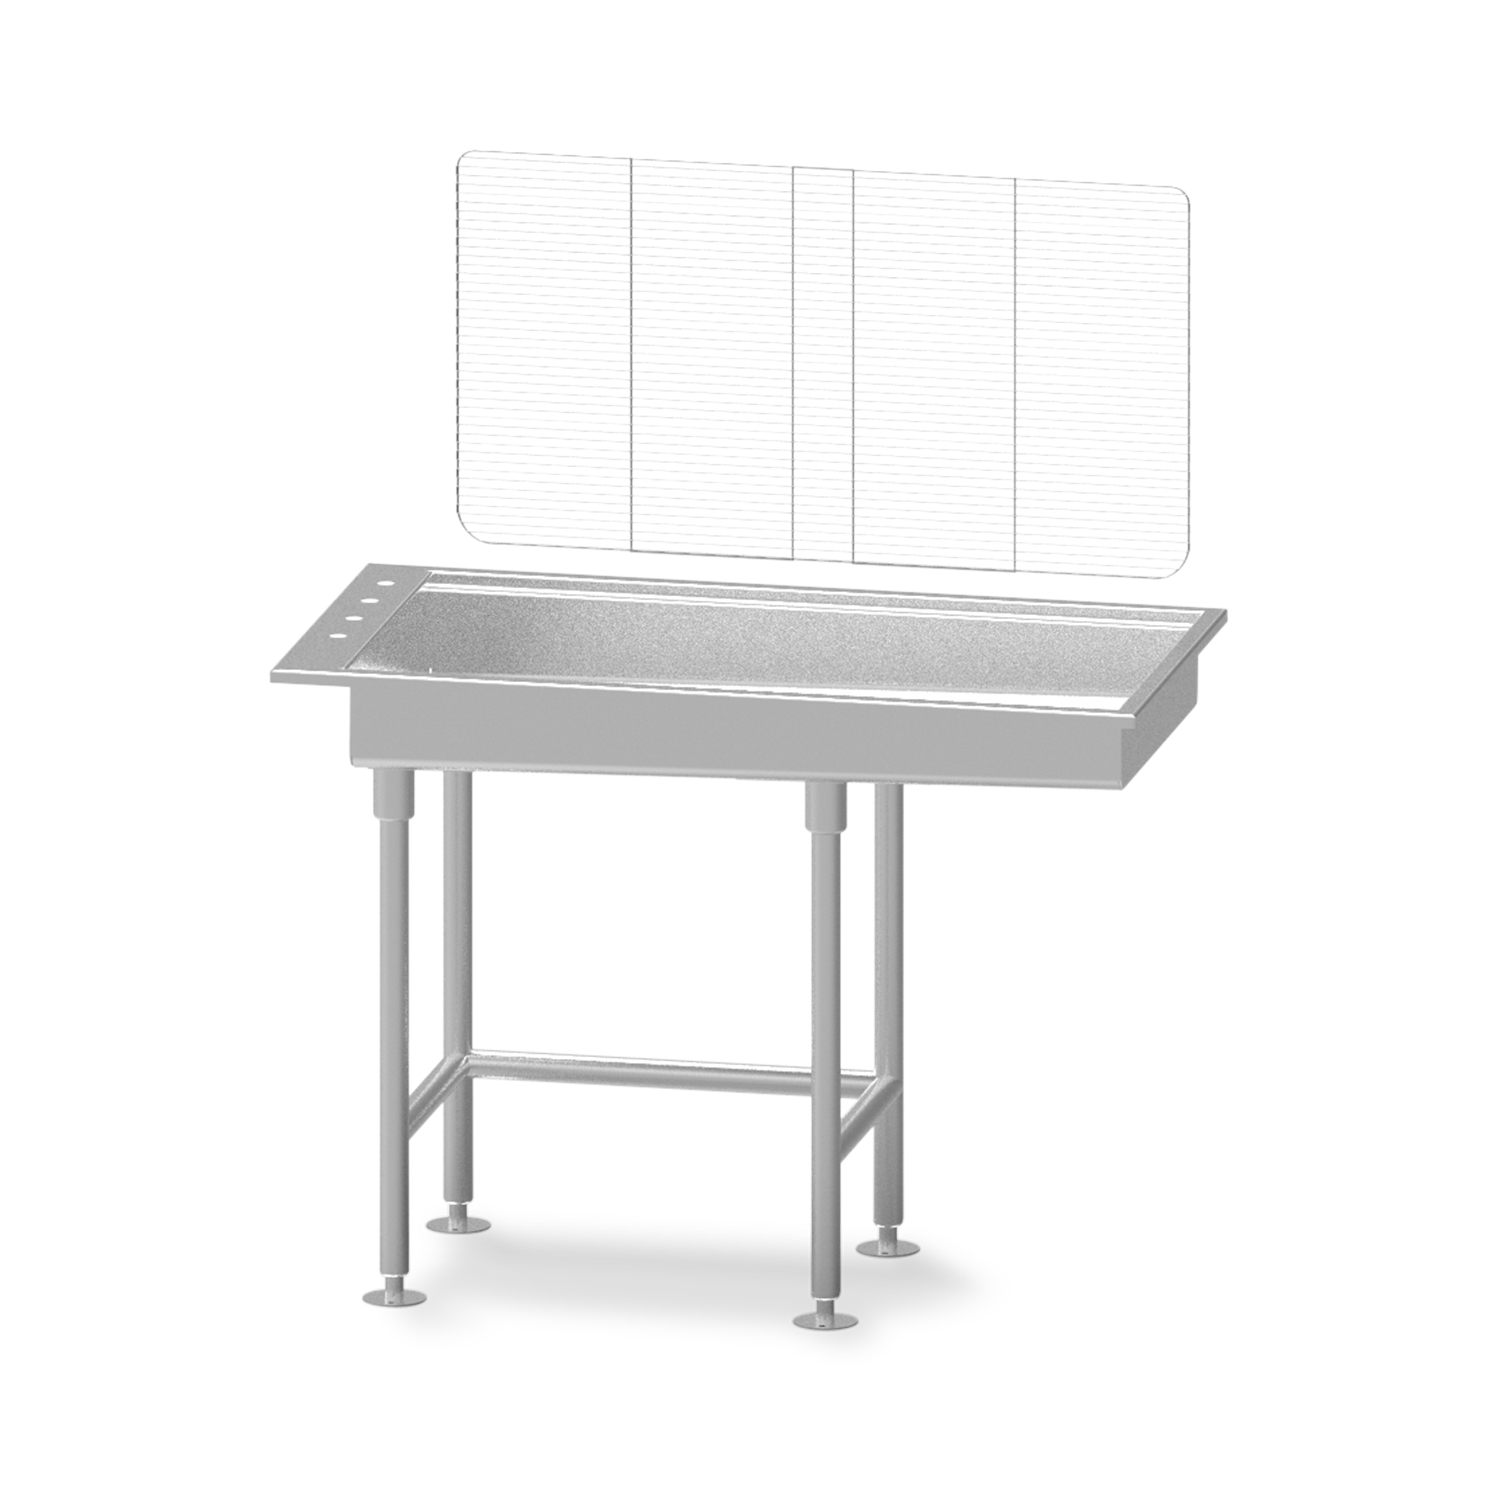 "Avante Economy Stainless Steel 6"" Deep Wet Table"